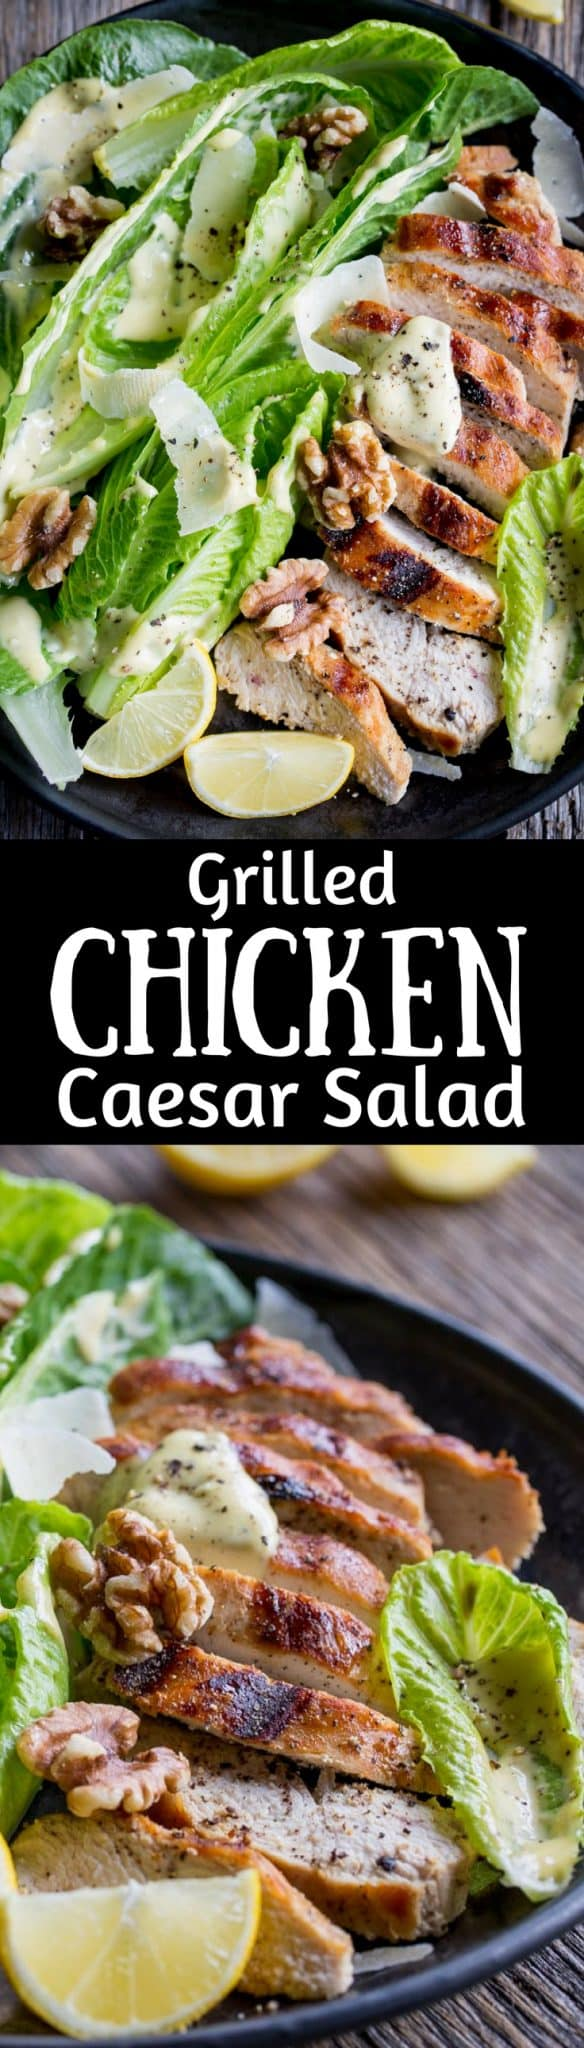 Grilled Chicken Caesar Salad Saving Room For Dessert